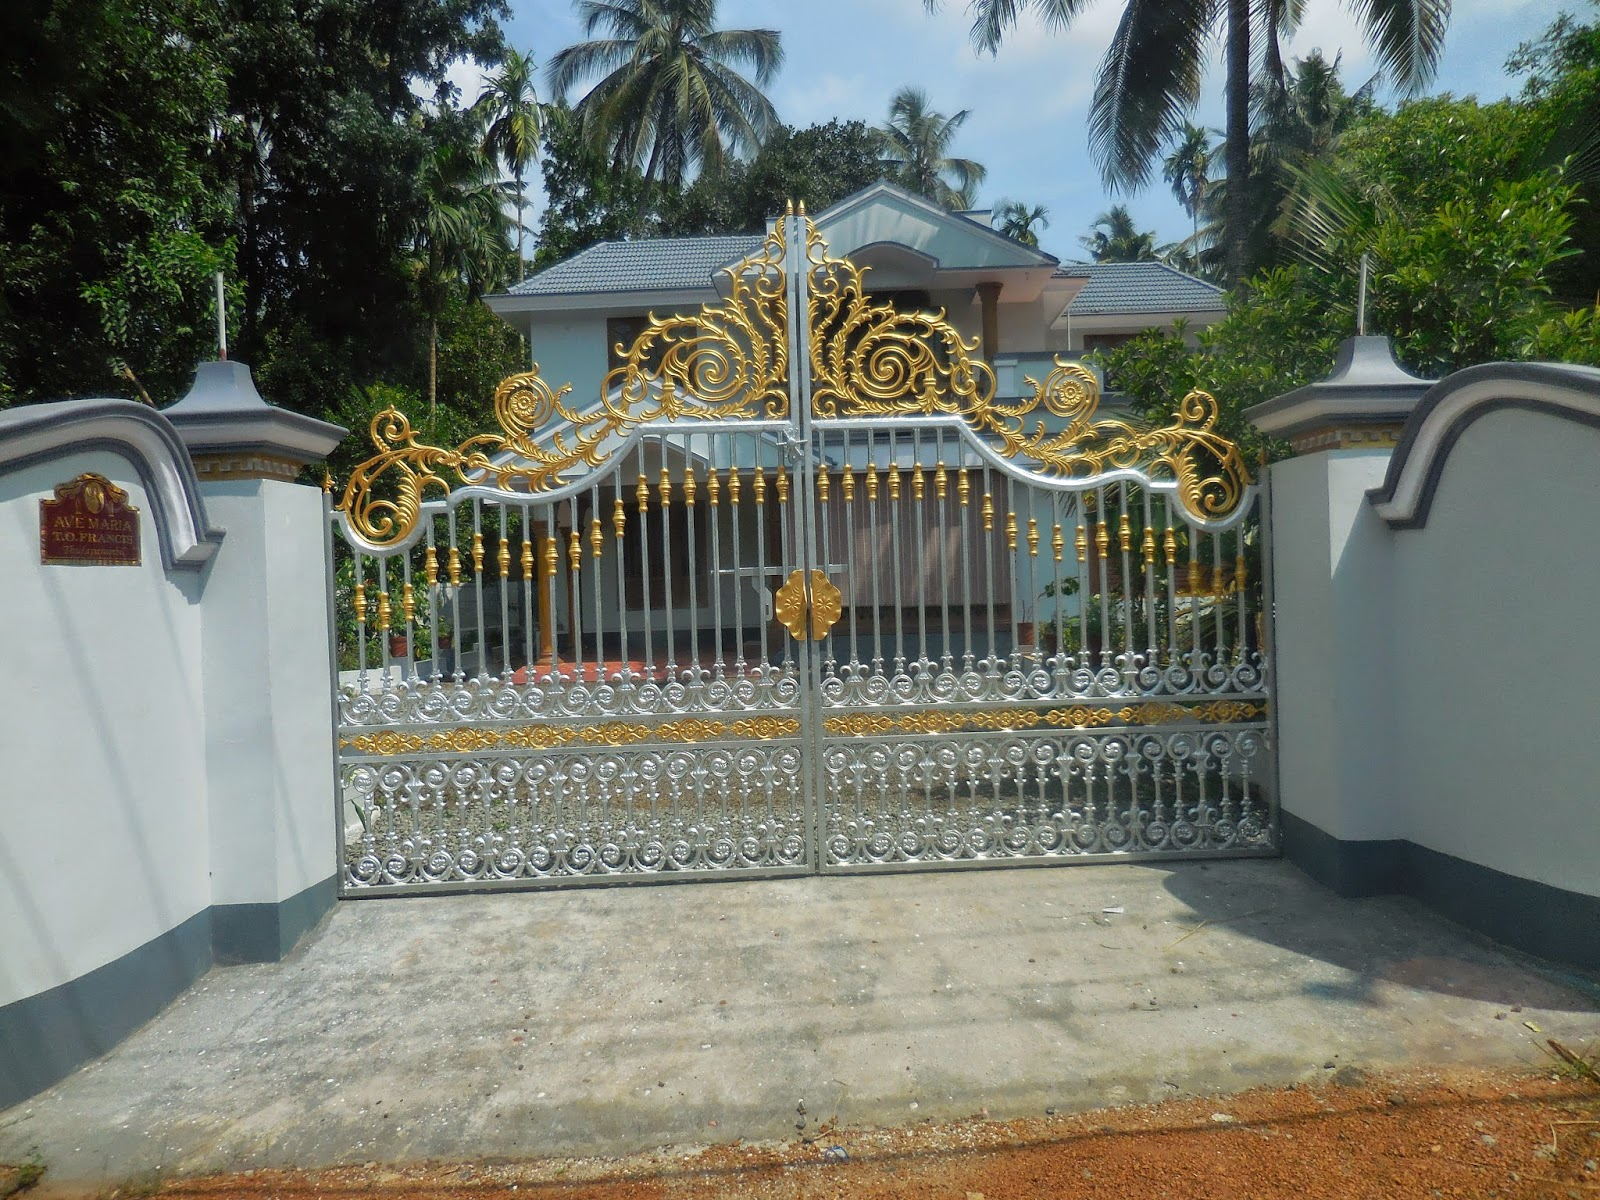 ... thrissur district kerala kerala house gate gate house in kerala